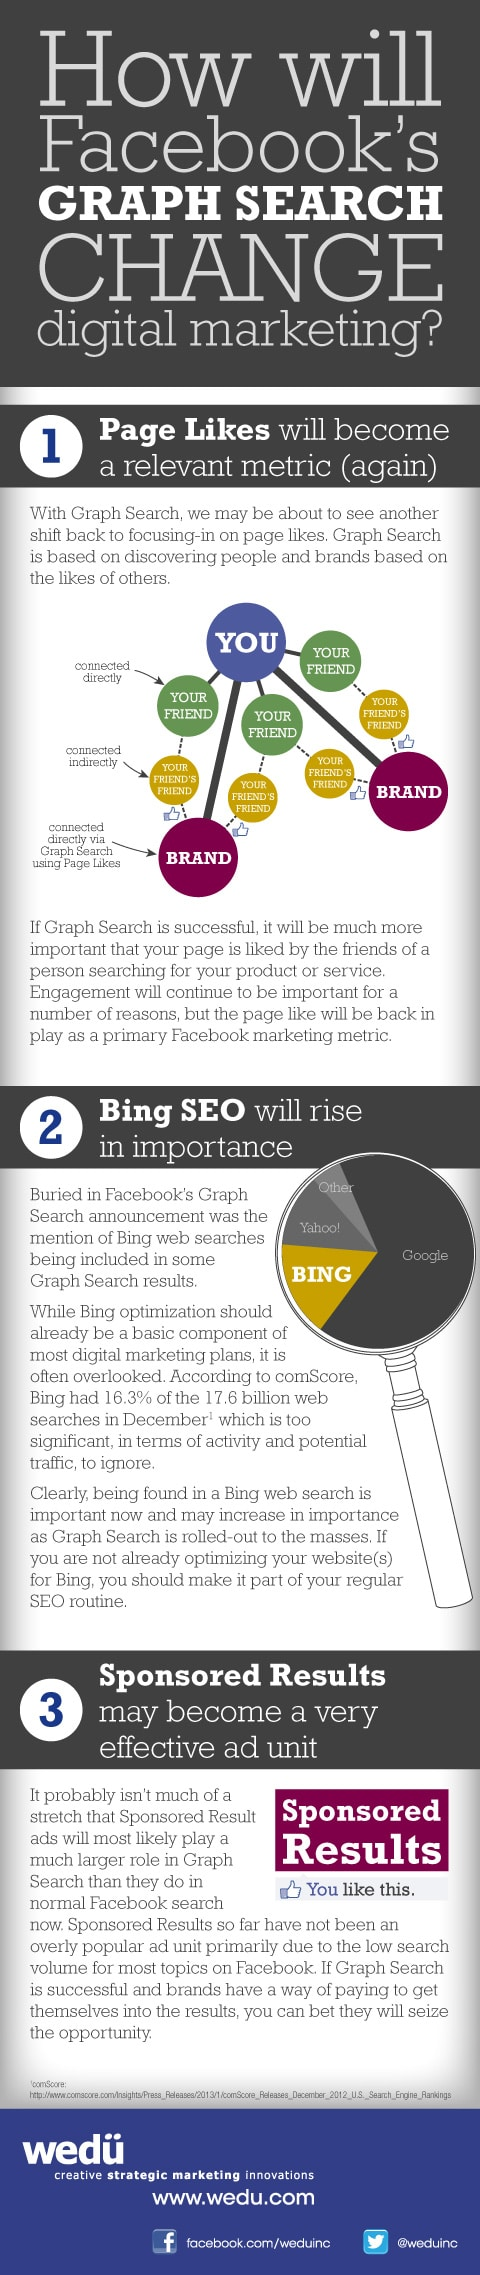 Why Graph Search Will Change Online Marketing [Infographic]